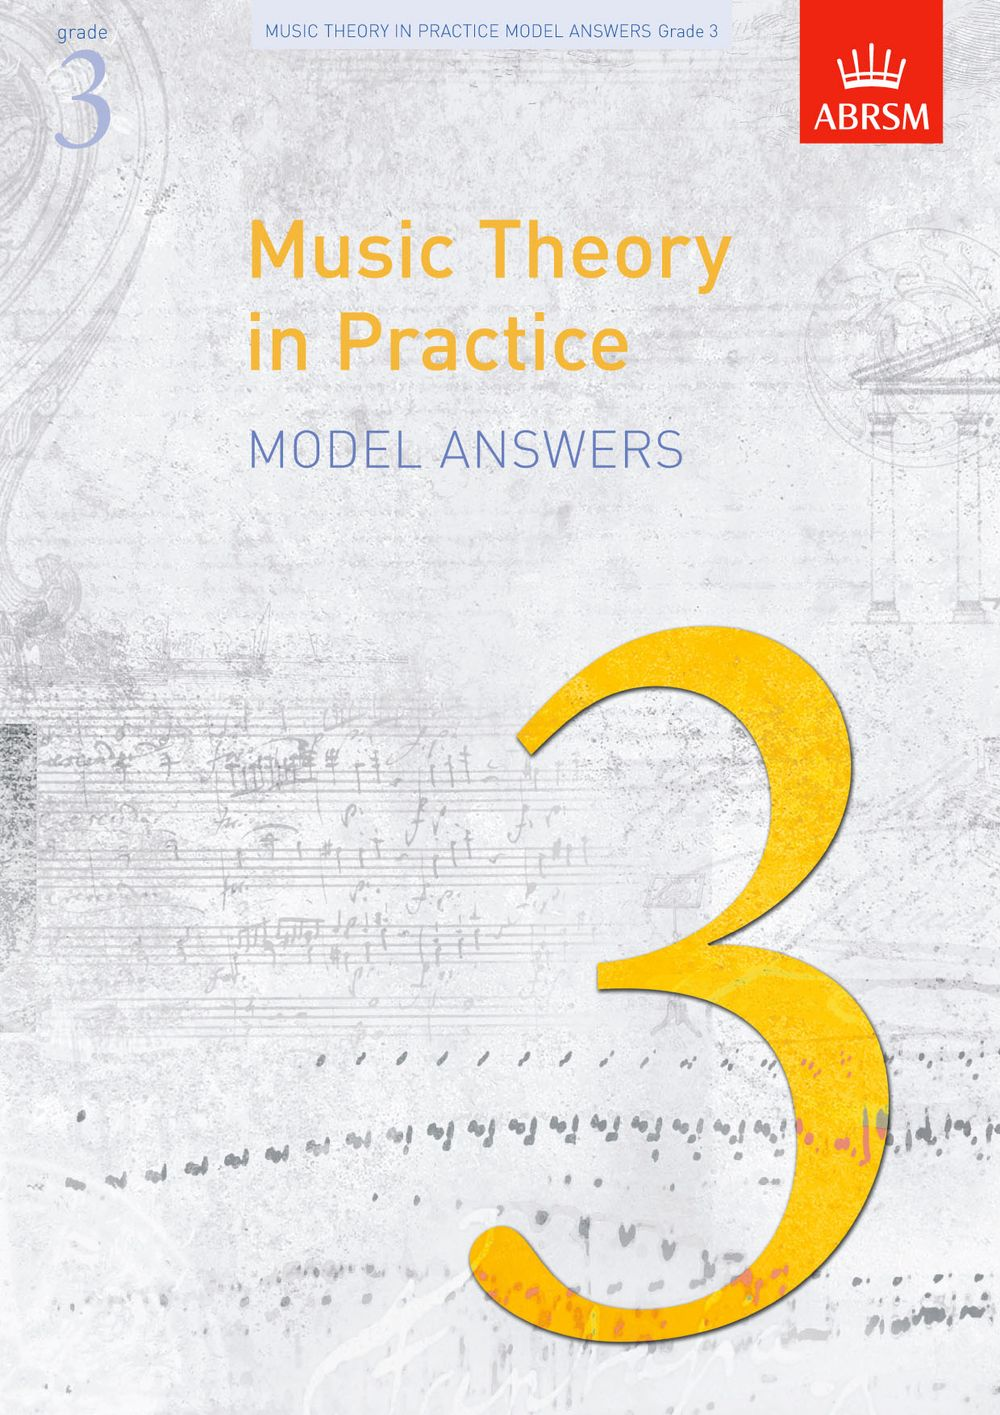 Music Theory in Practice Model Answers  Grade 3: Theory